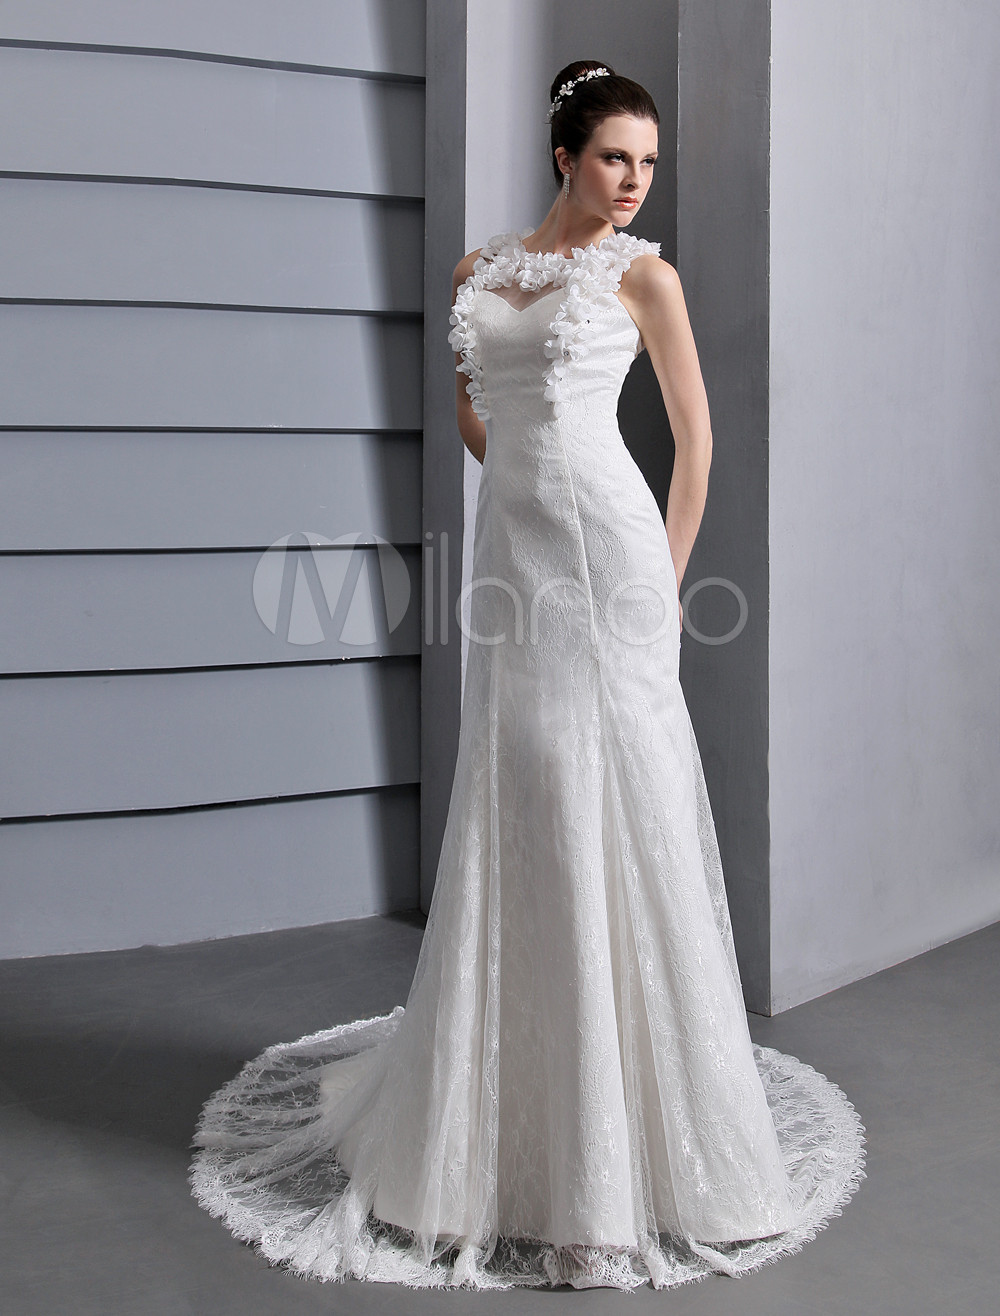 Ivory Sheath Flower Lace Wedding Dress For Bride Milanoo